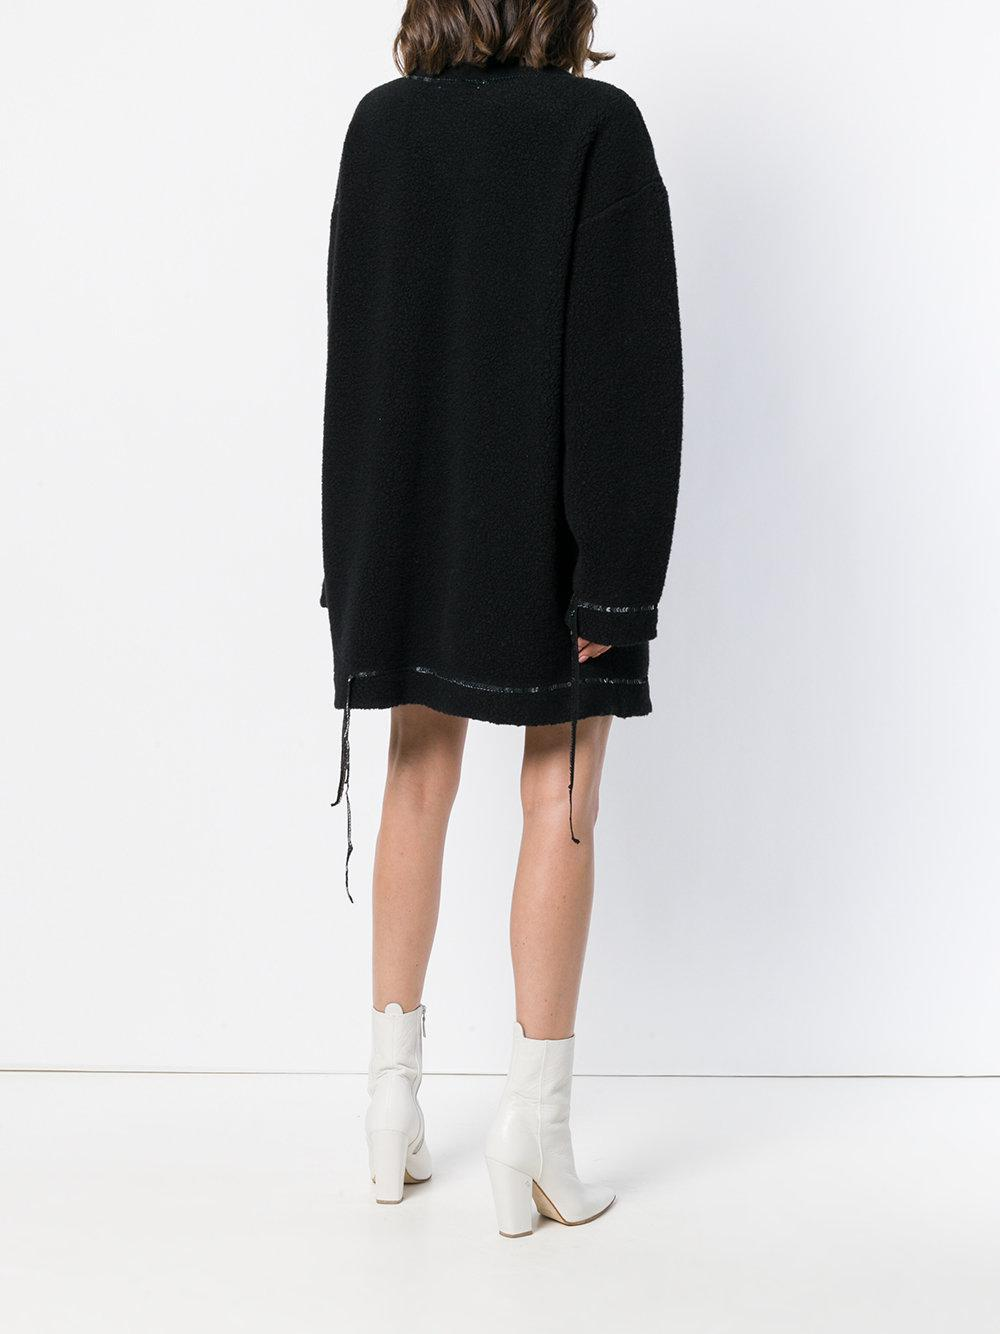 Mm6 Maison Margiela sequin embellished oversized sweater dress Latest Cheap Price 2018 New Cheap Price 2018 Newest Cheap Price FhHZcB8k